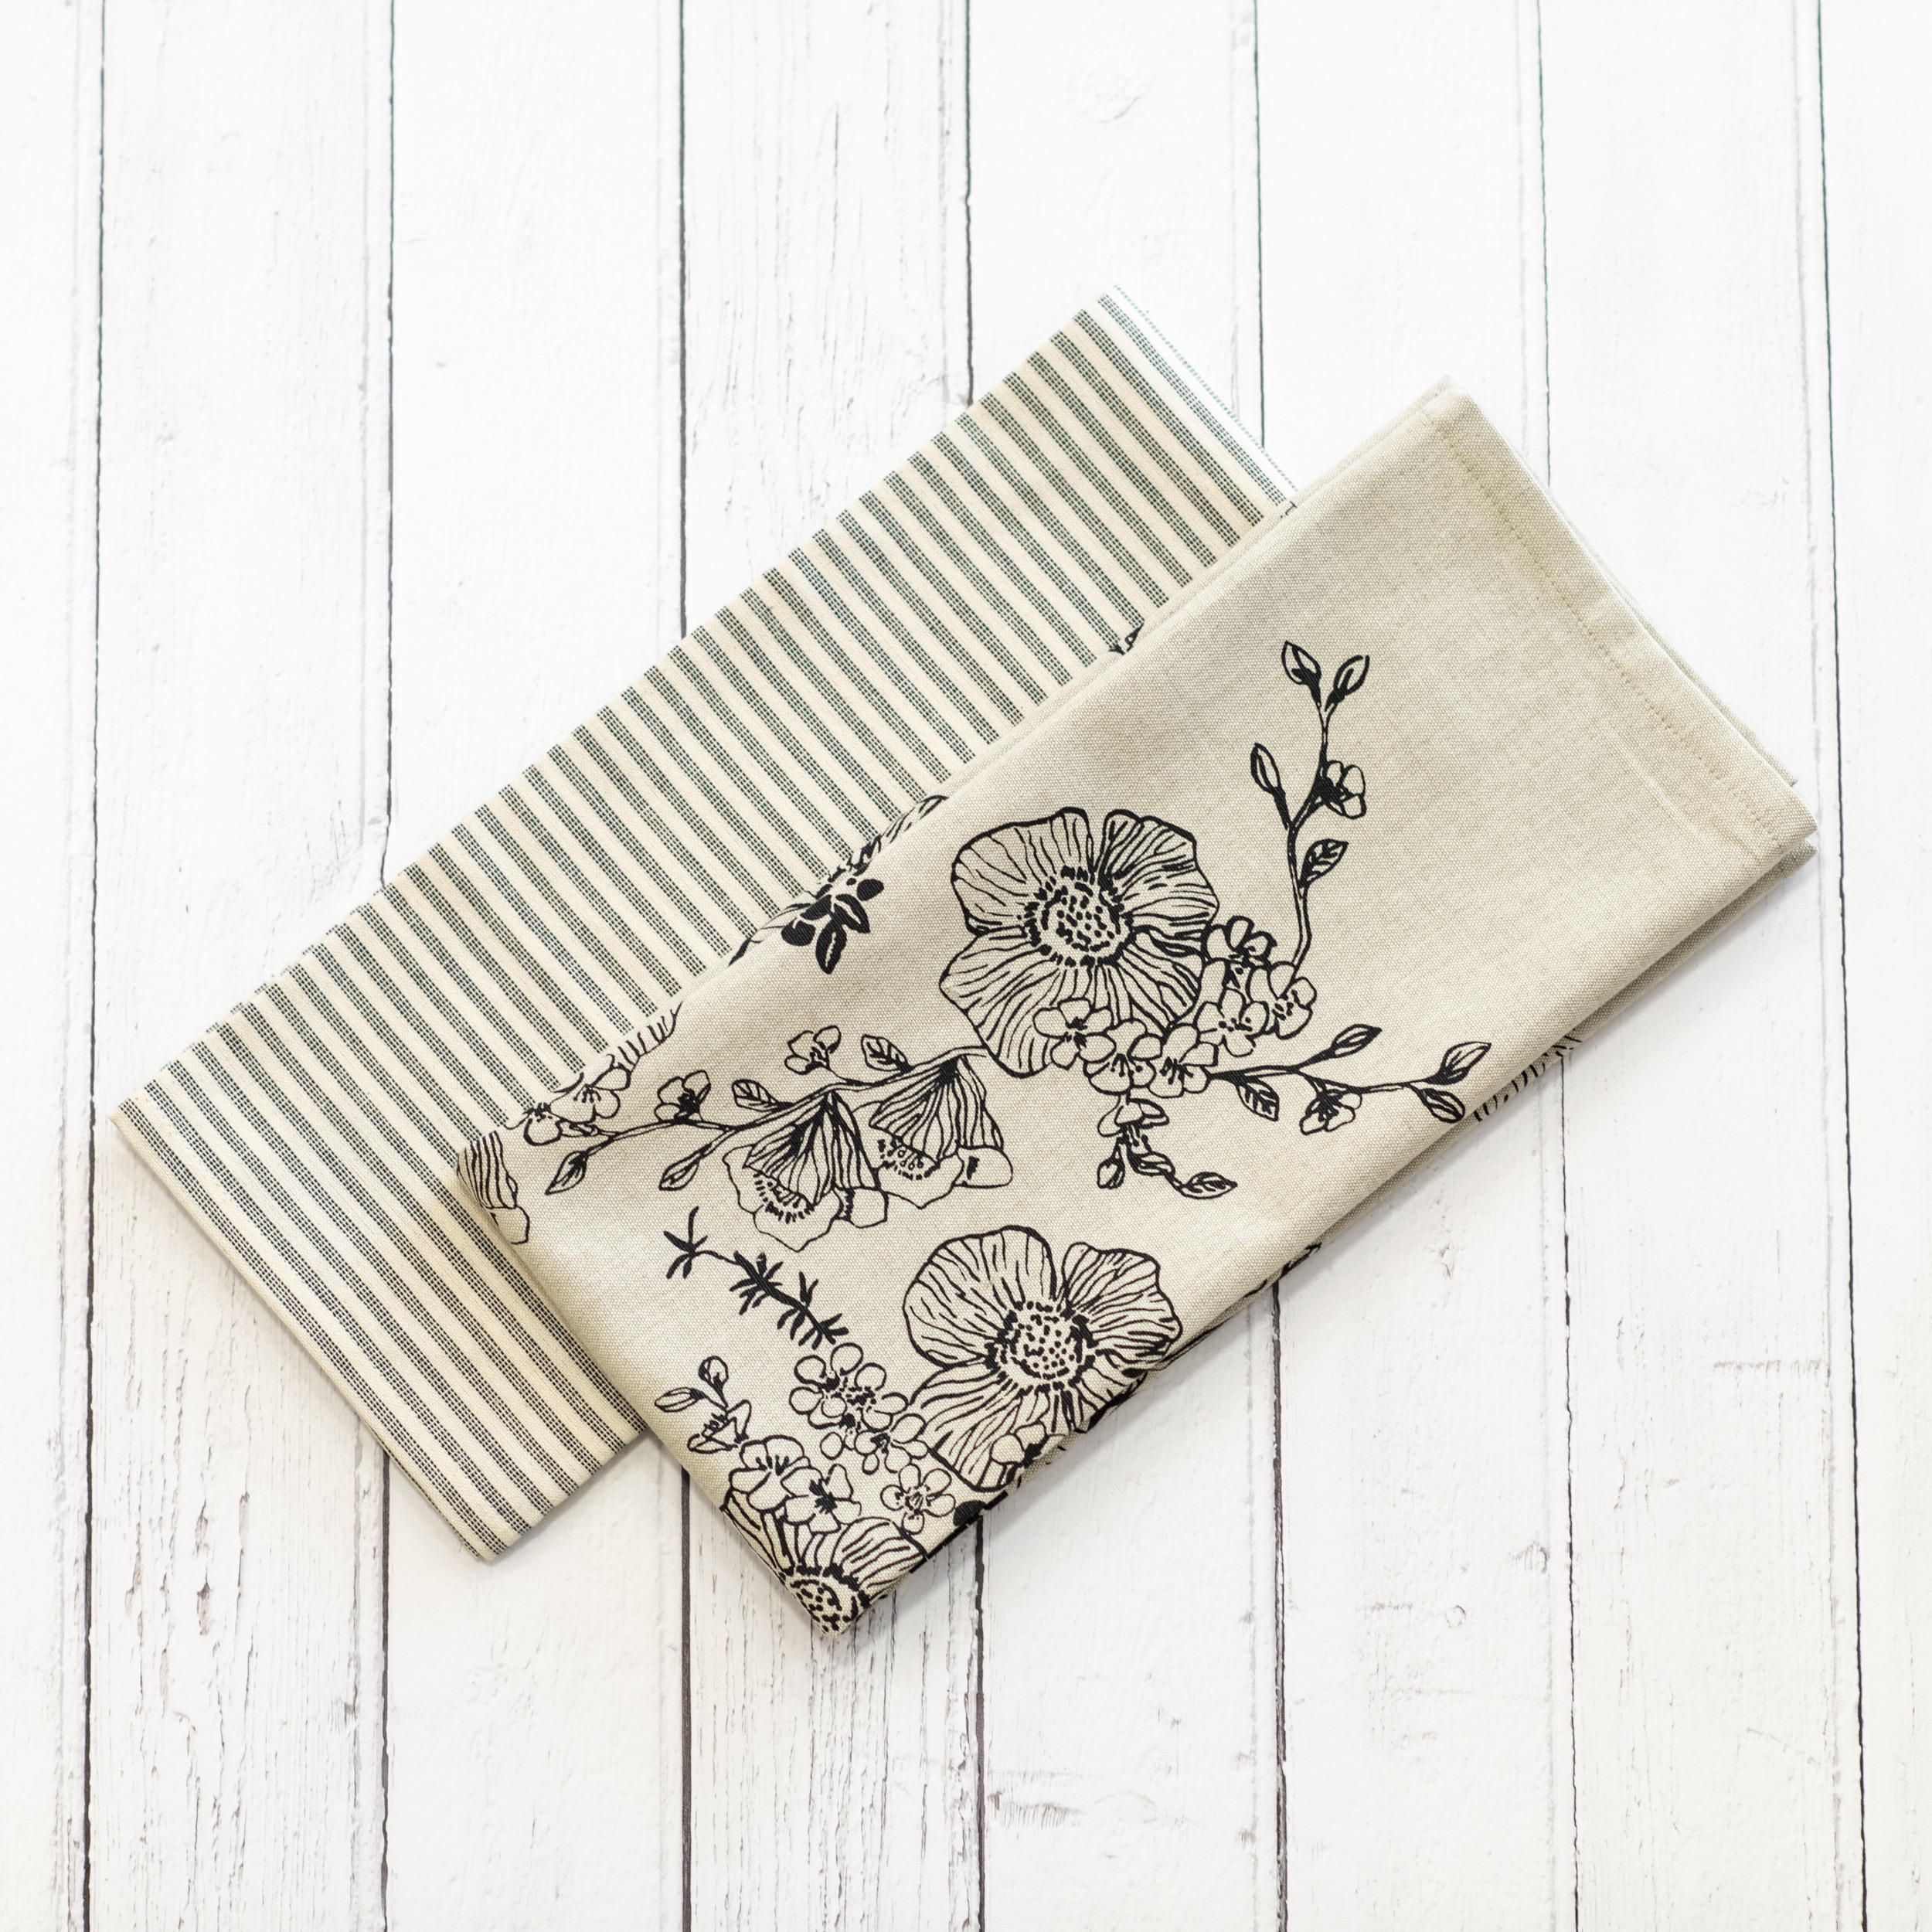 Charcoal Rose Tea Towel Pack